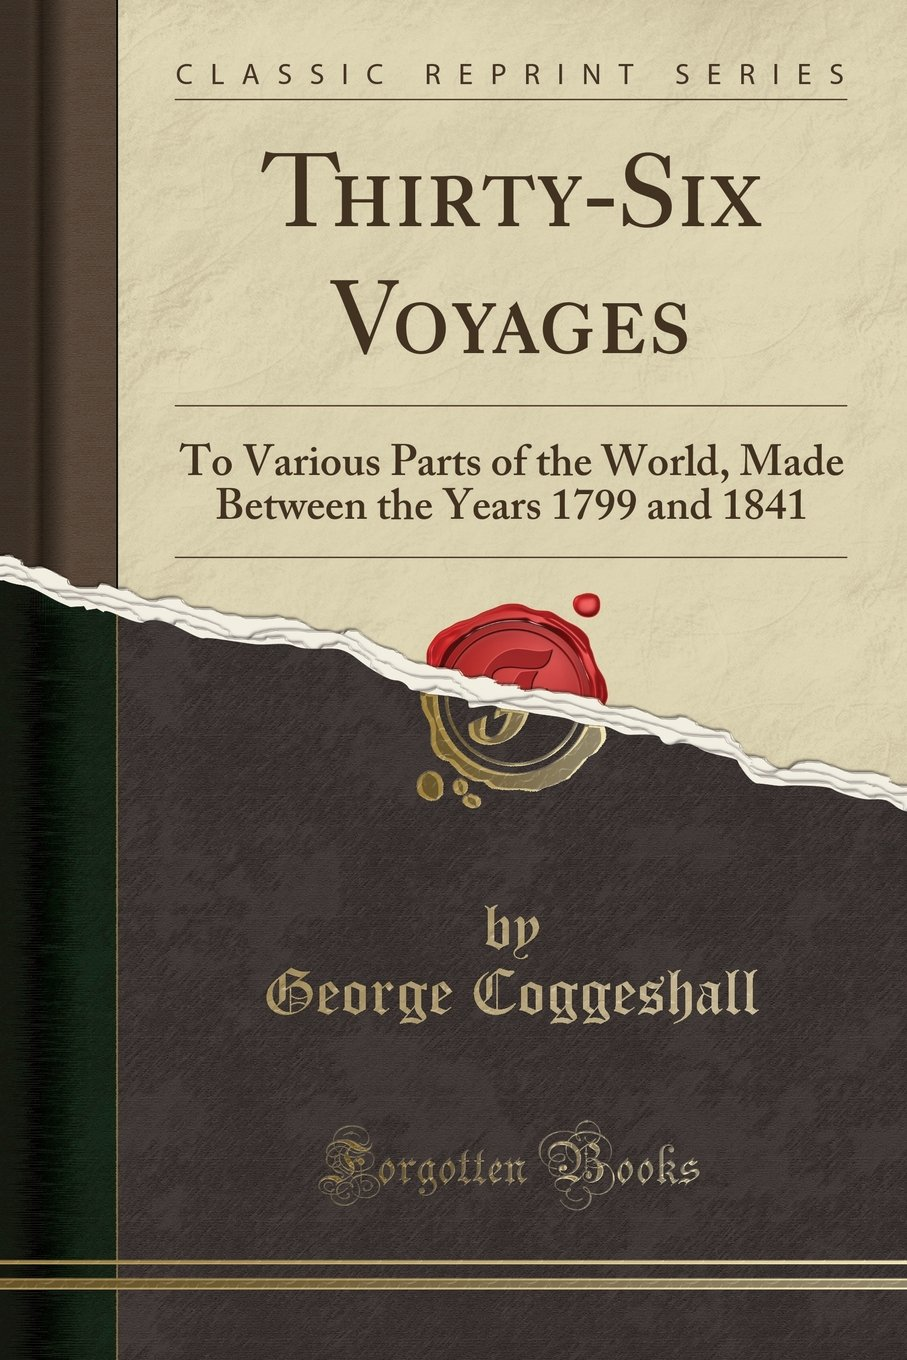 Download Thirty-Six Voyages: To Various Parts of the World, Made Between the Years 1799 and 1841 (Classic Reprint) pdf epub